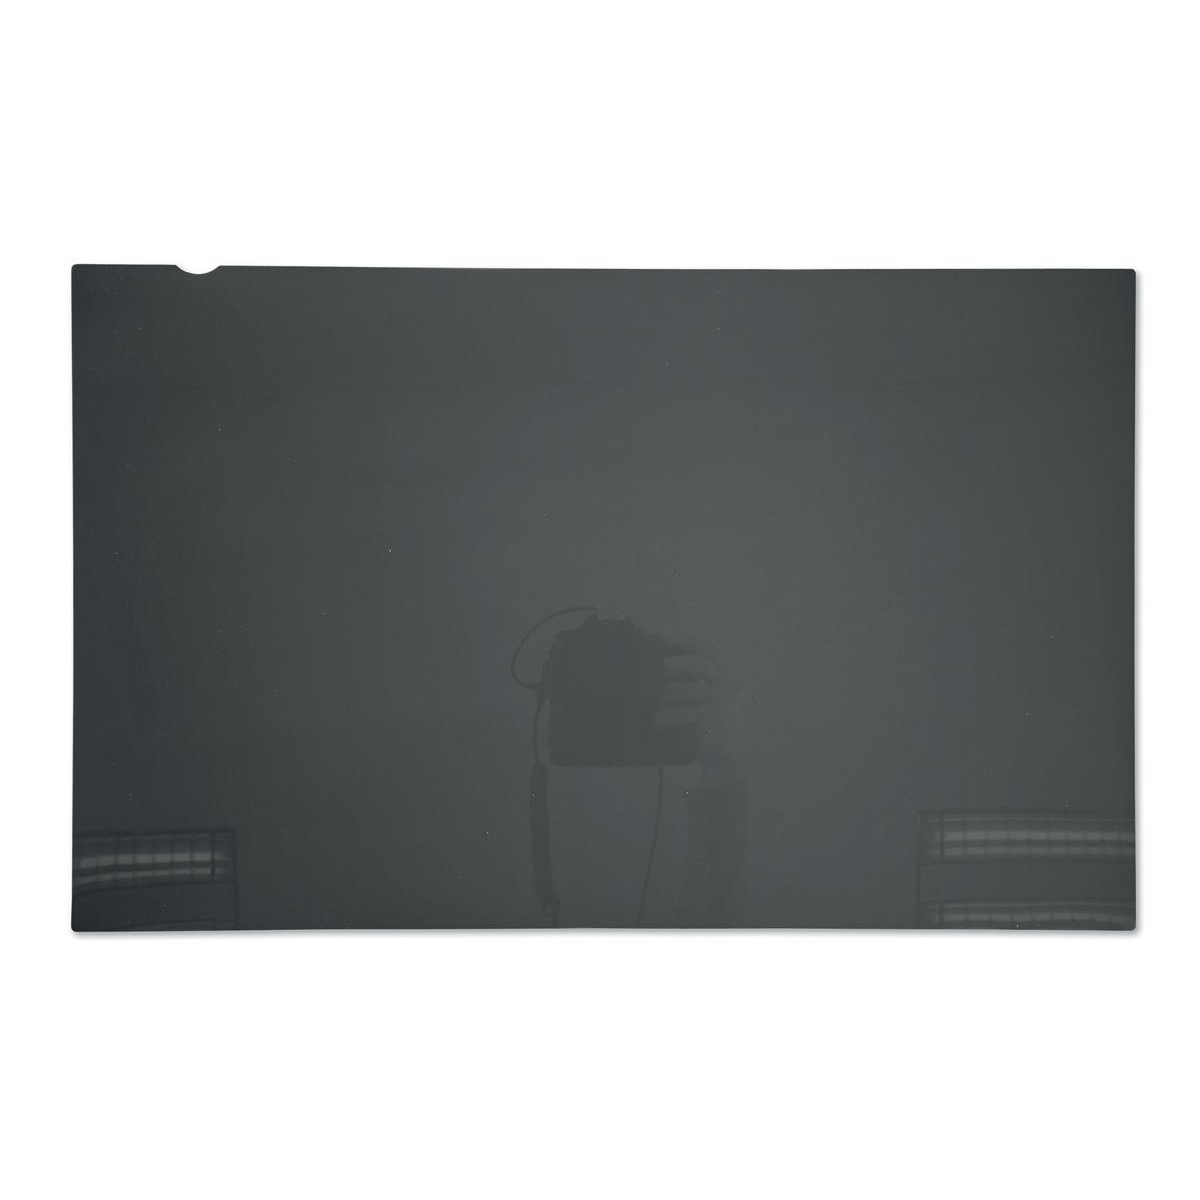 Laptop 5 Star Office 24inch Widescreen Privacy Filter for TFT monitors and Laptops Transparent/Black 16:10